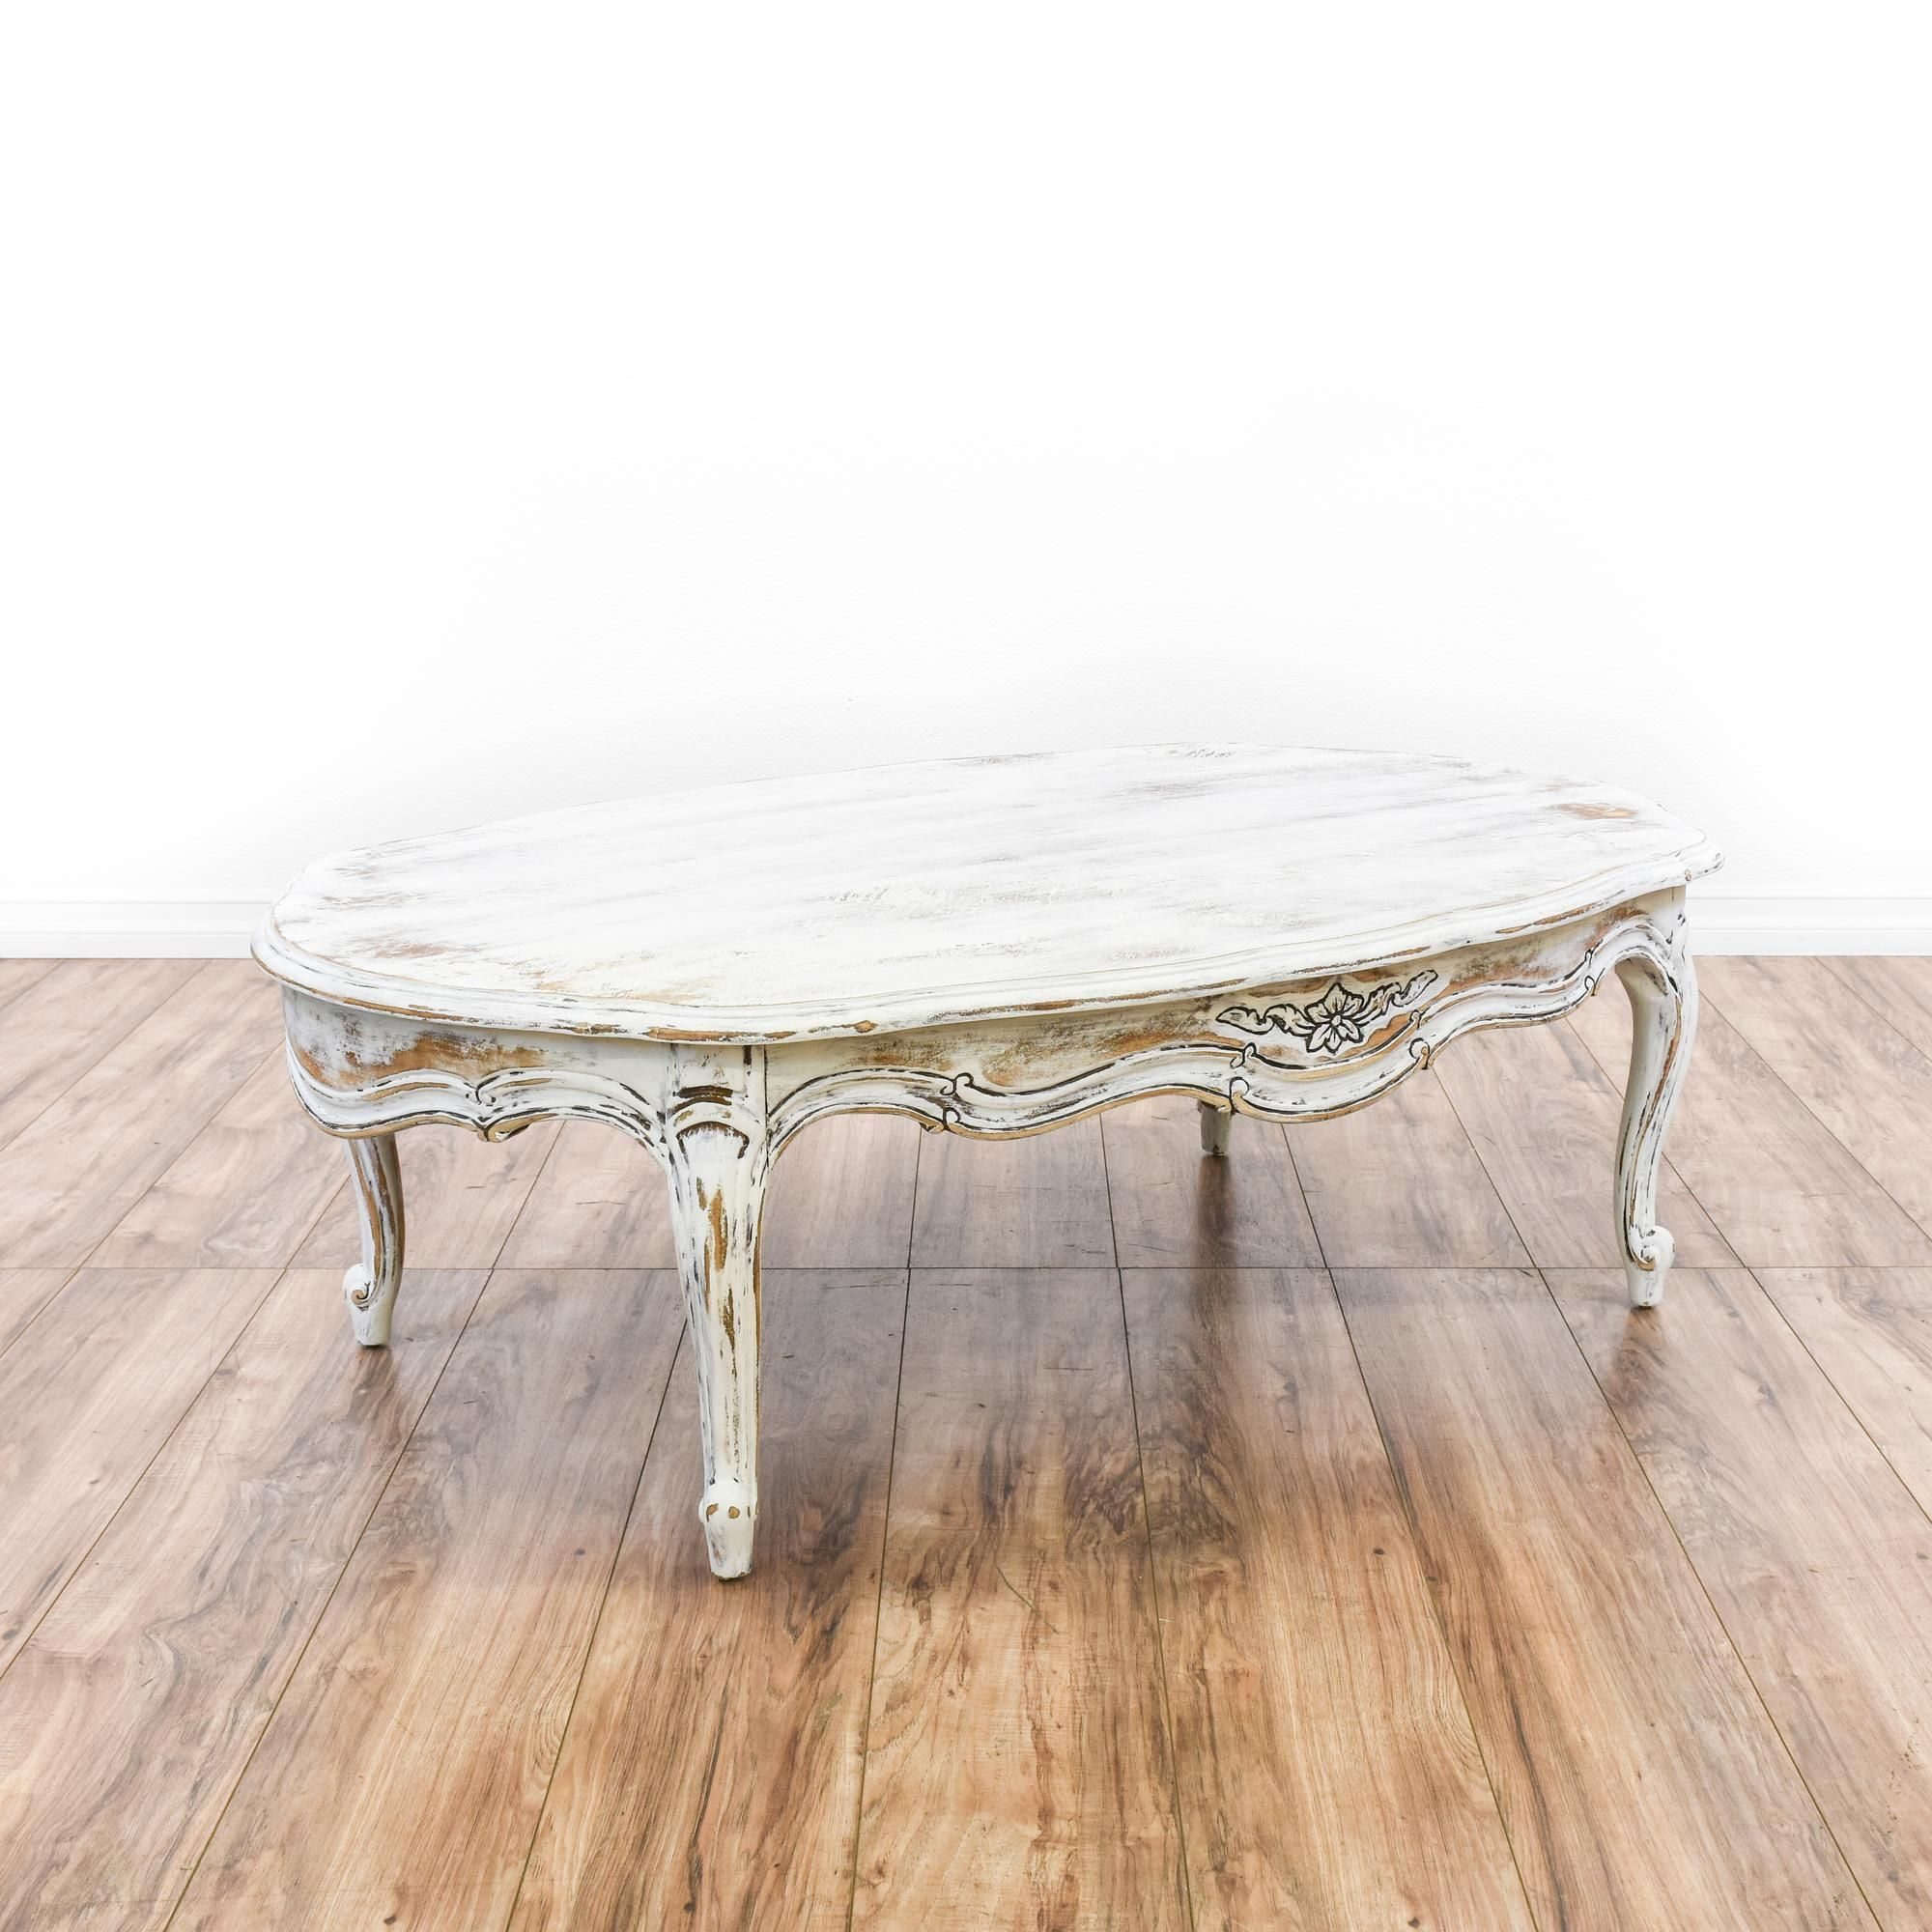 White Shabby Chic French Provincial Coffee Table This french